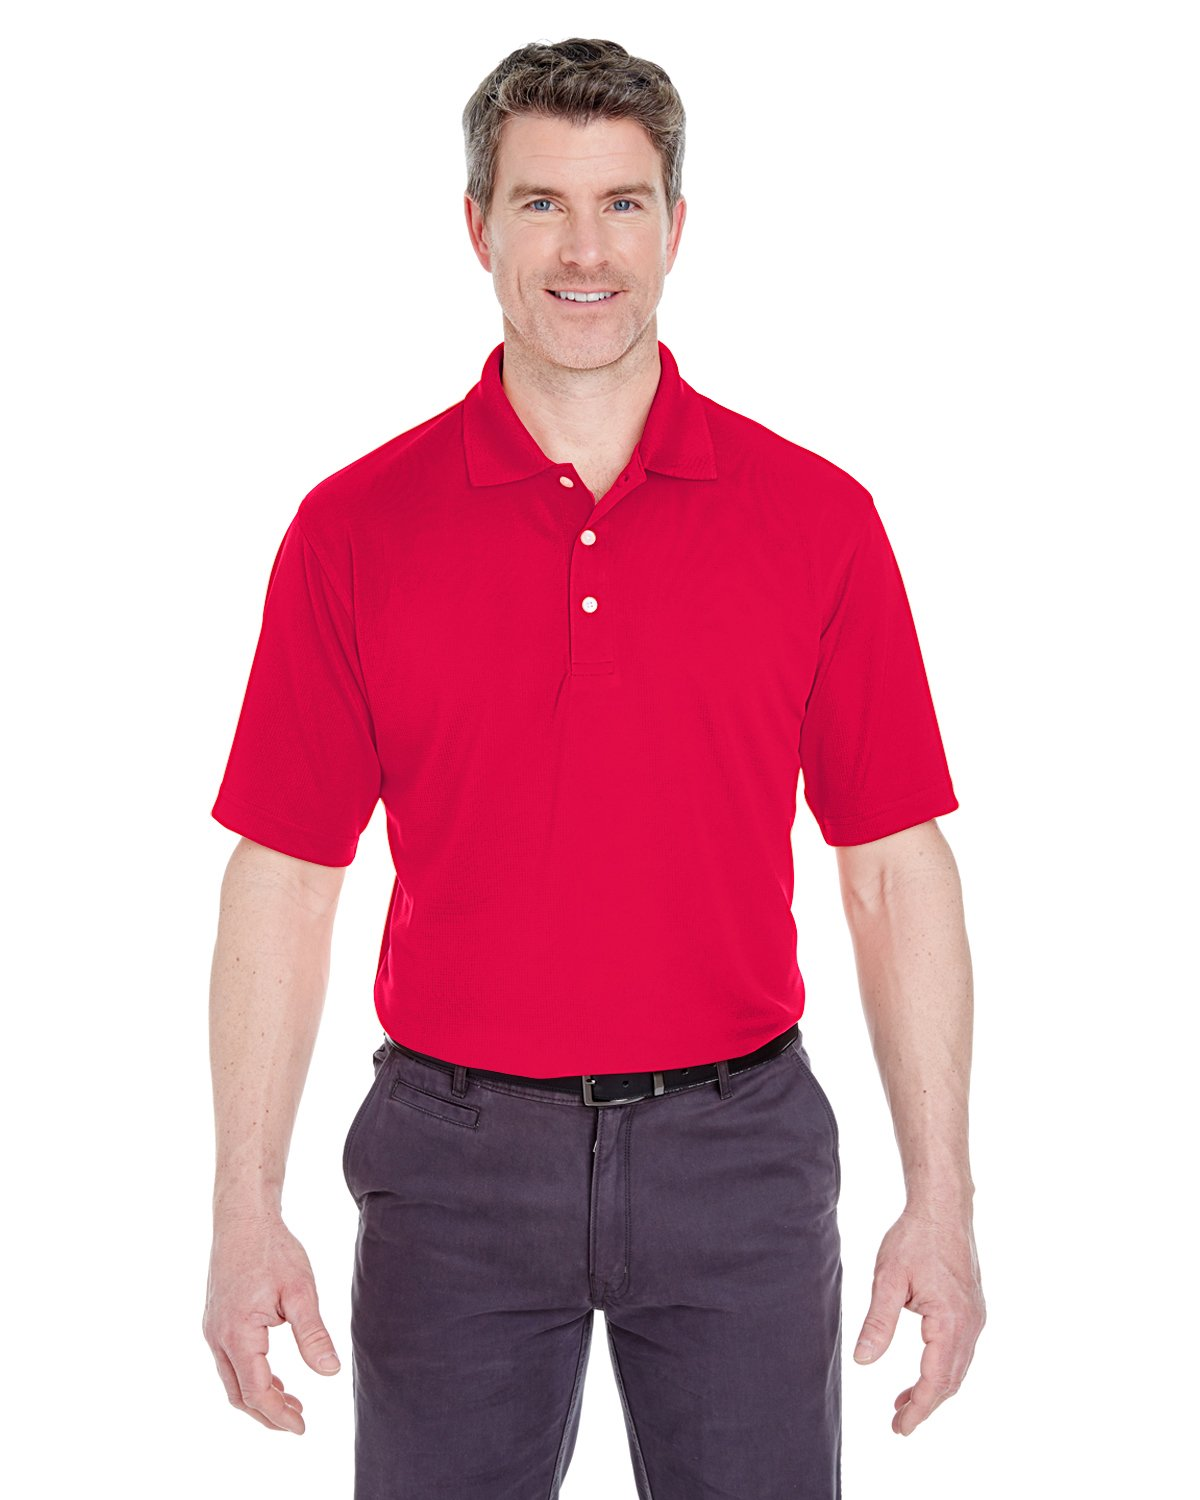 8445 UC MEN STAIN RELEASE PERF POLO RED 5XL UltraClub